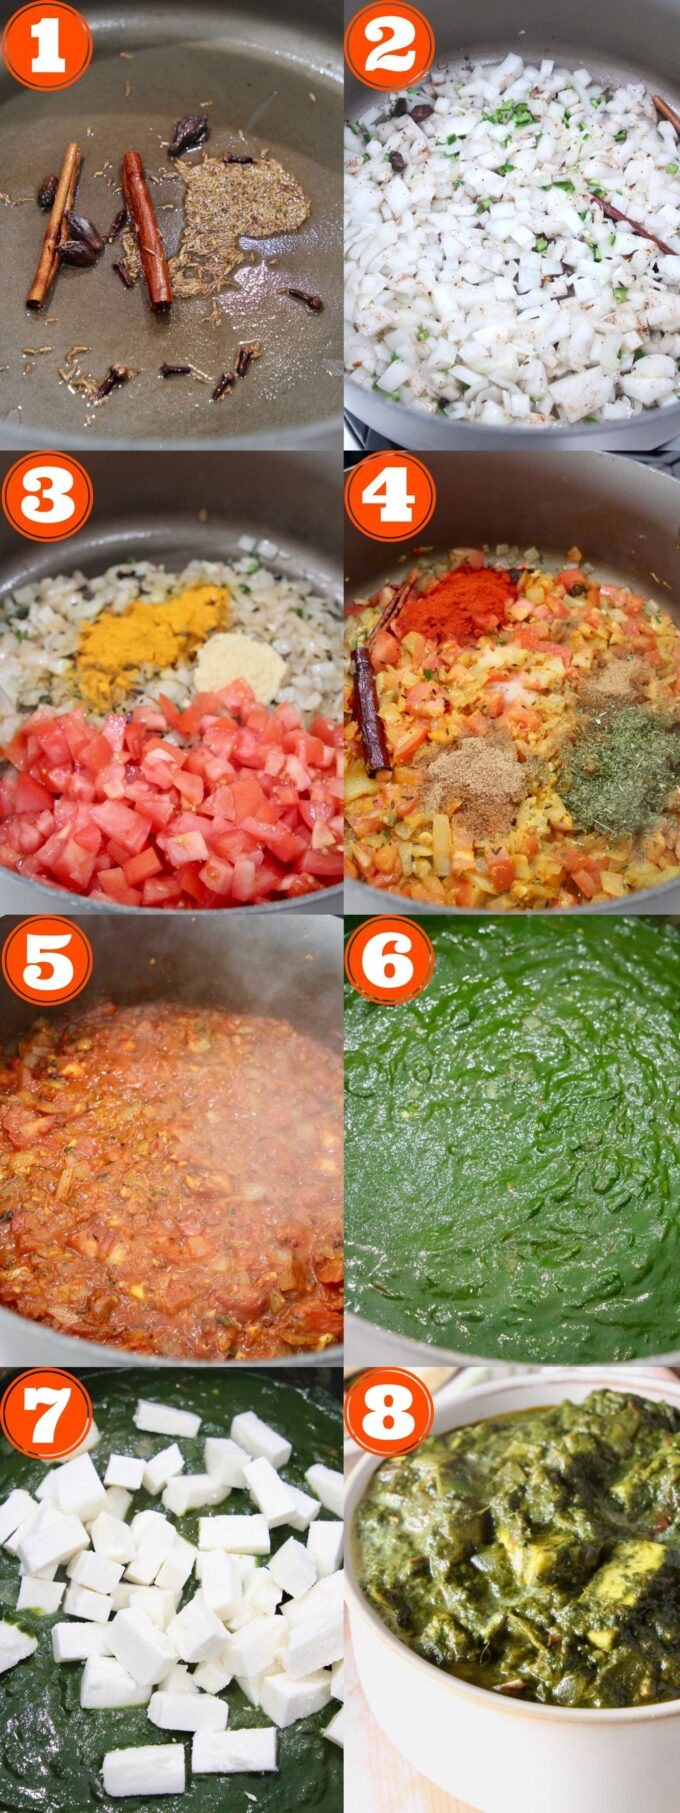 collage of images showing how to make palak paneer